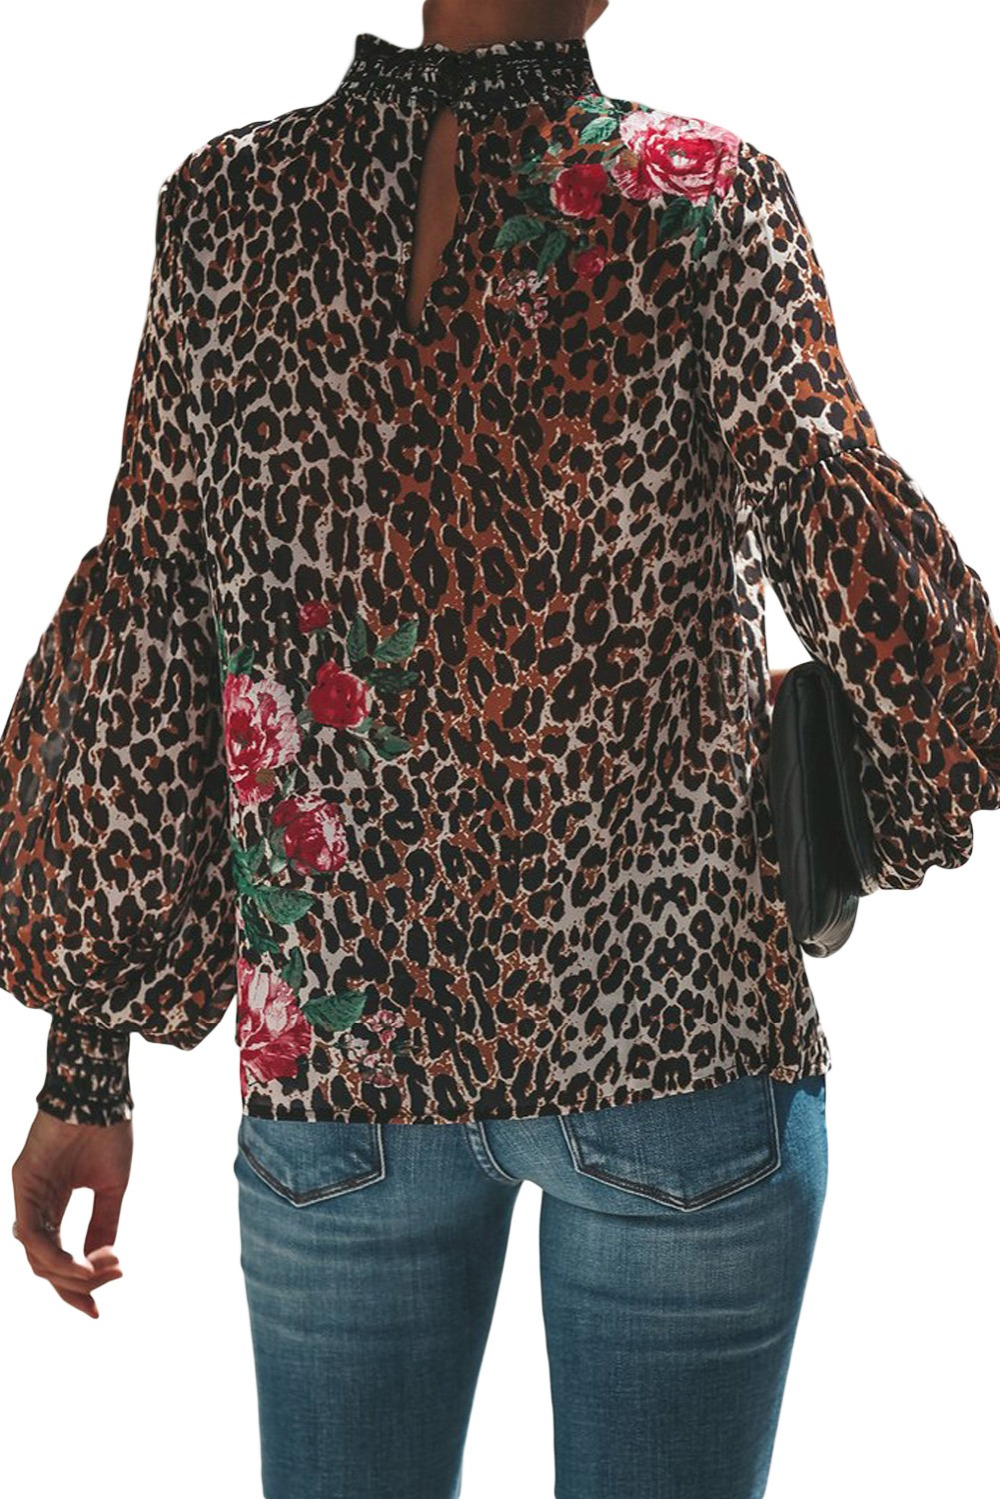 Leopard-Peony-Print-Smocked-Long-Sleeve-Blouse-LC251632-20-2